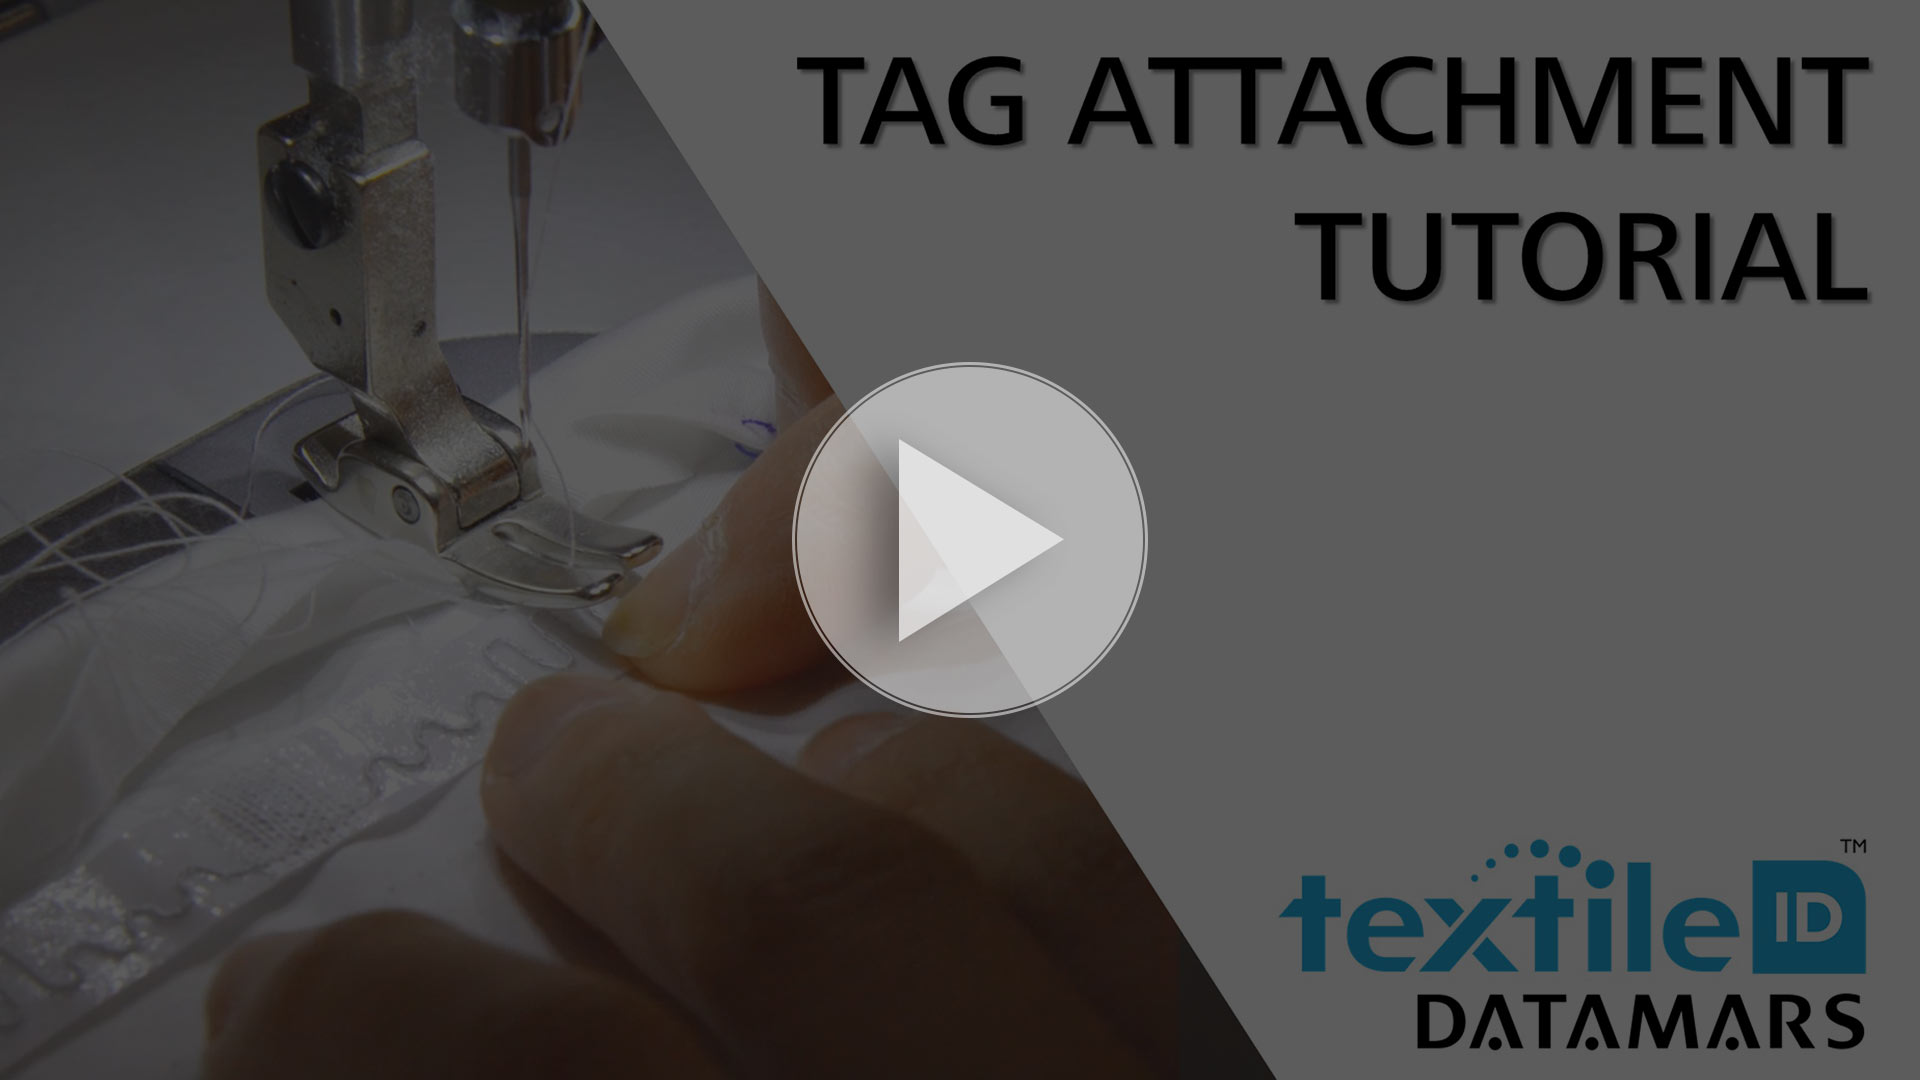 cop tag attachment tutorial